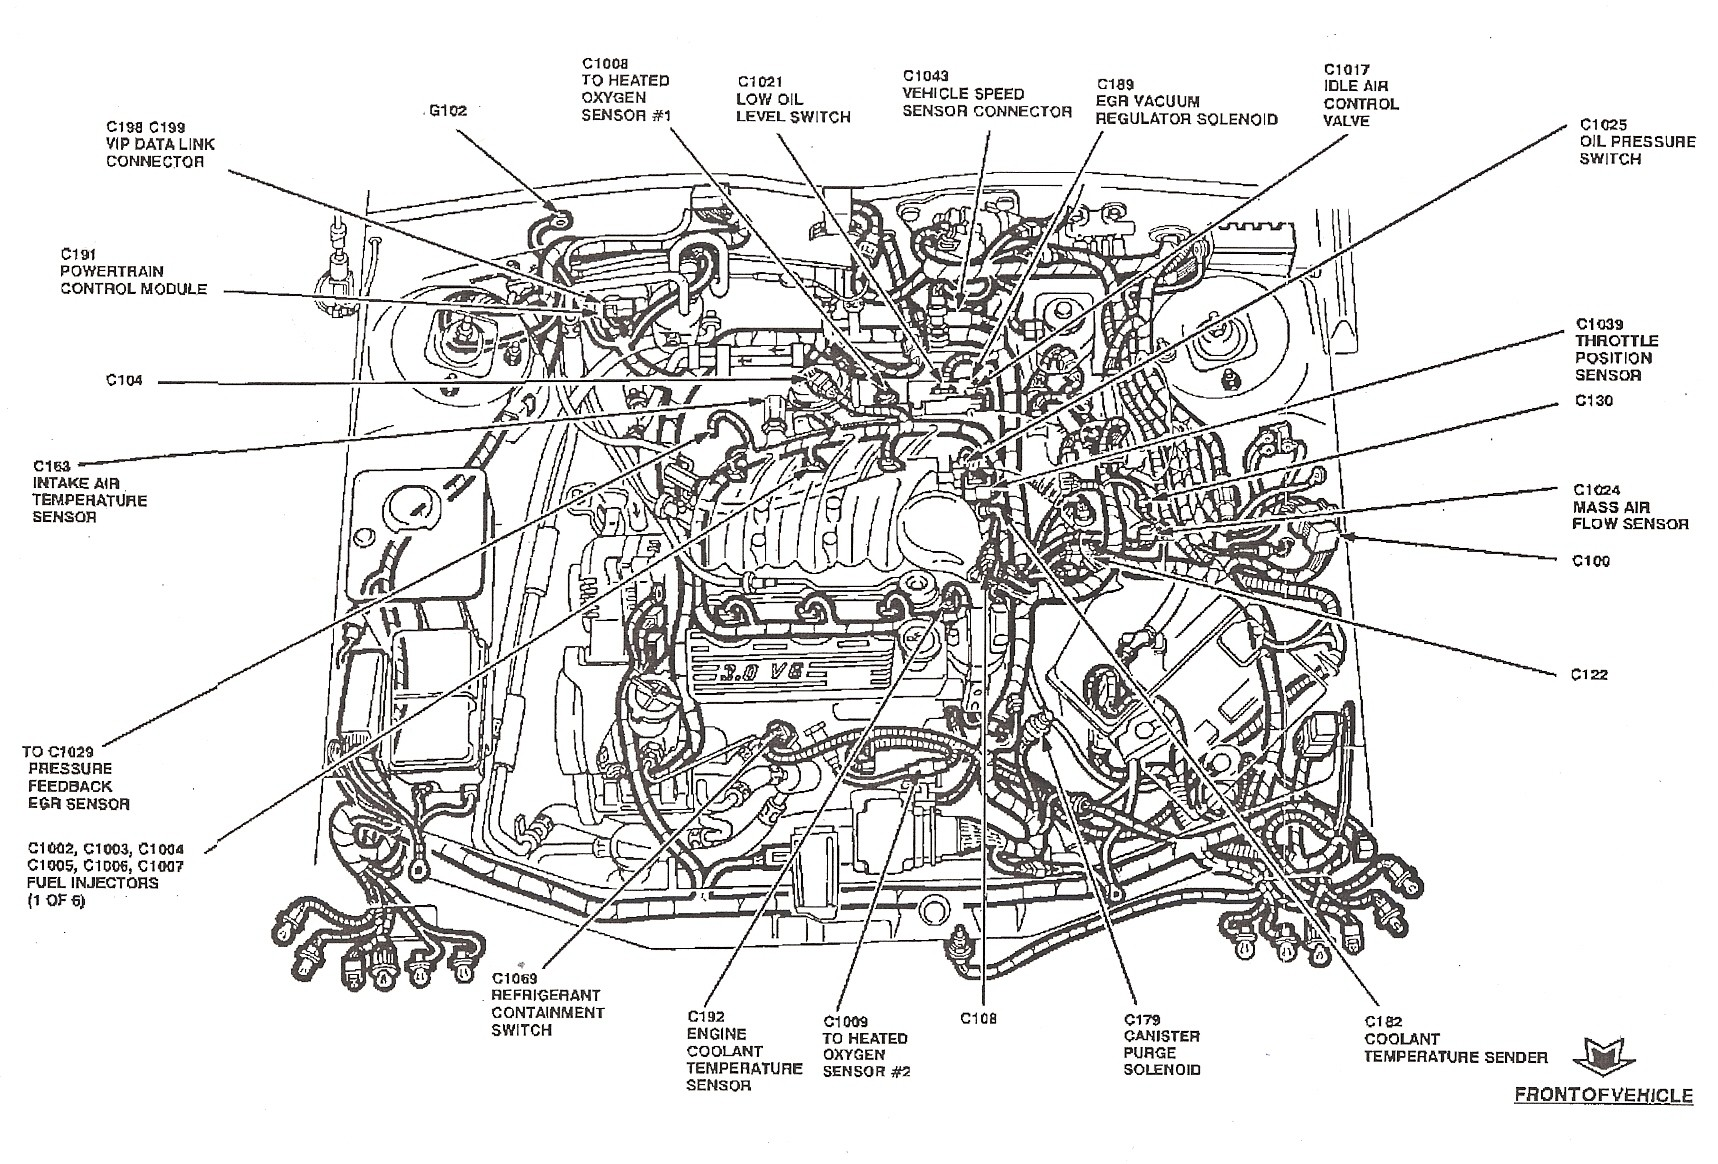 2002 ford Focus Se Engine Diagram 2011 ford Fiesta Engine Diagram Wiring  Diagram •